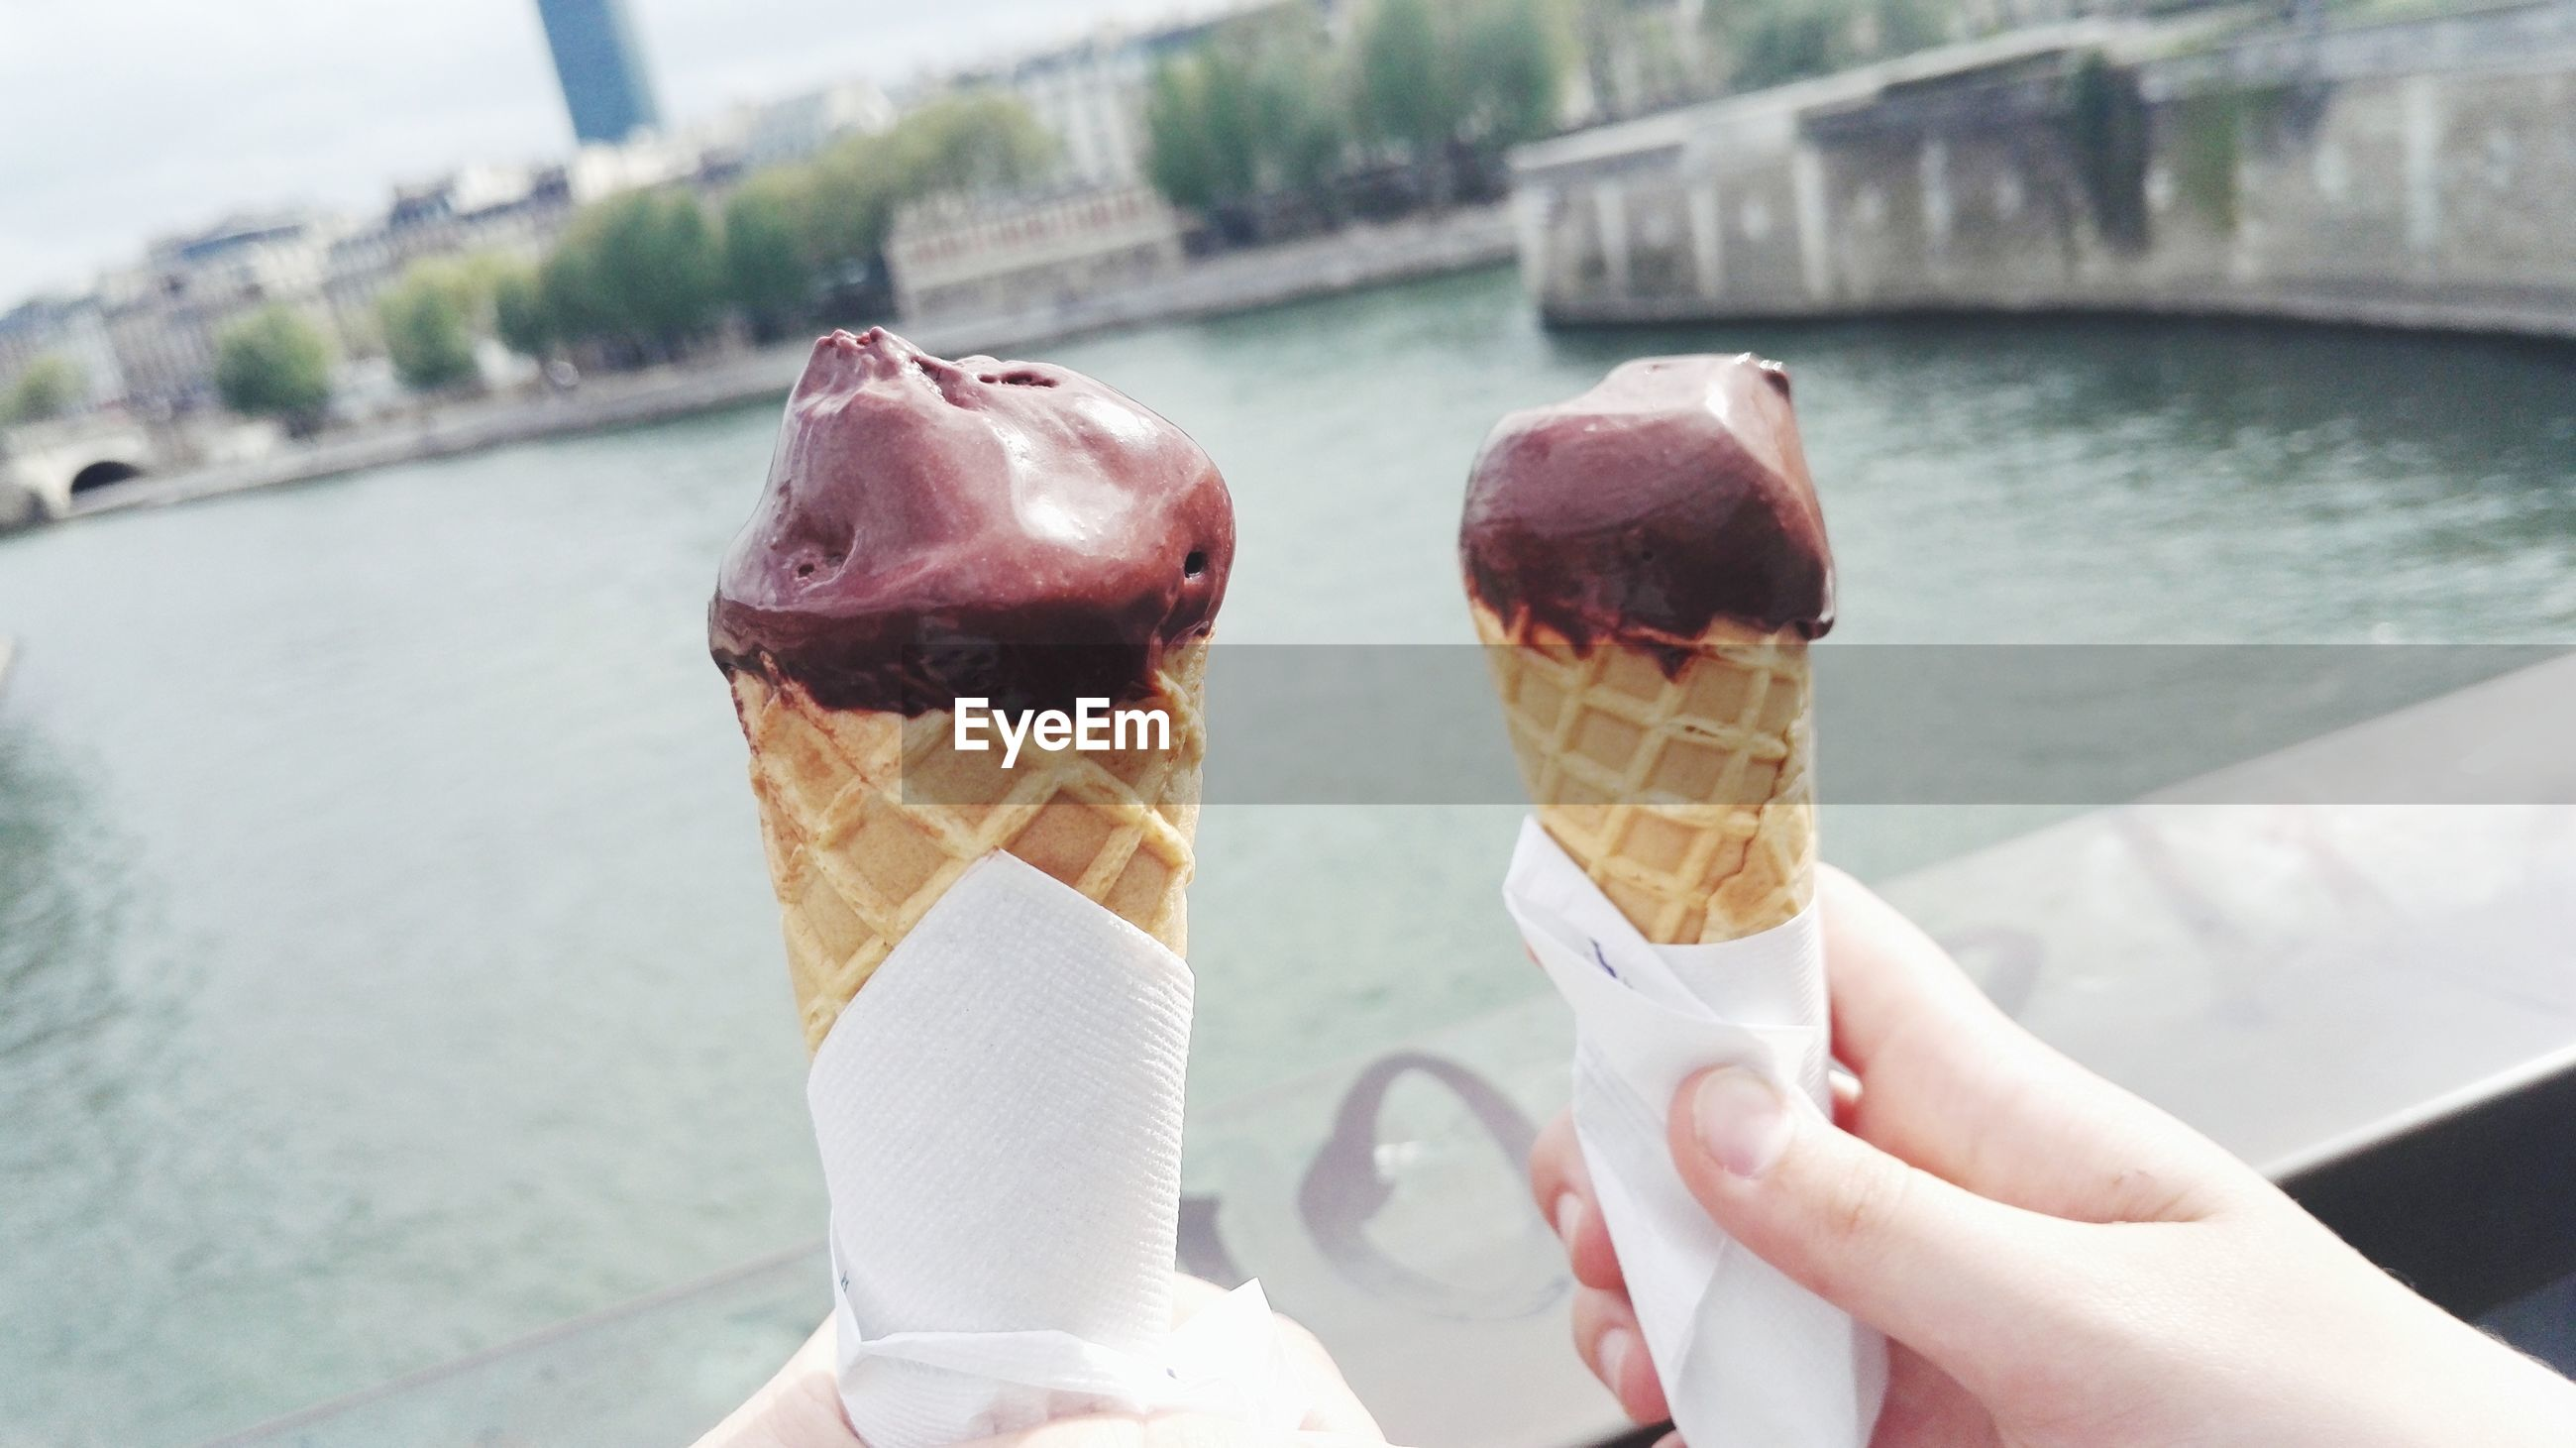 Cropped hand of woman holding ice cream cones against river